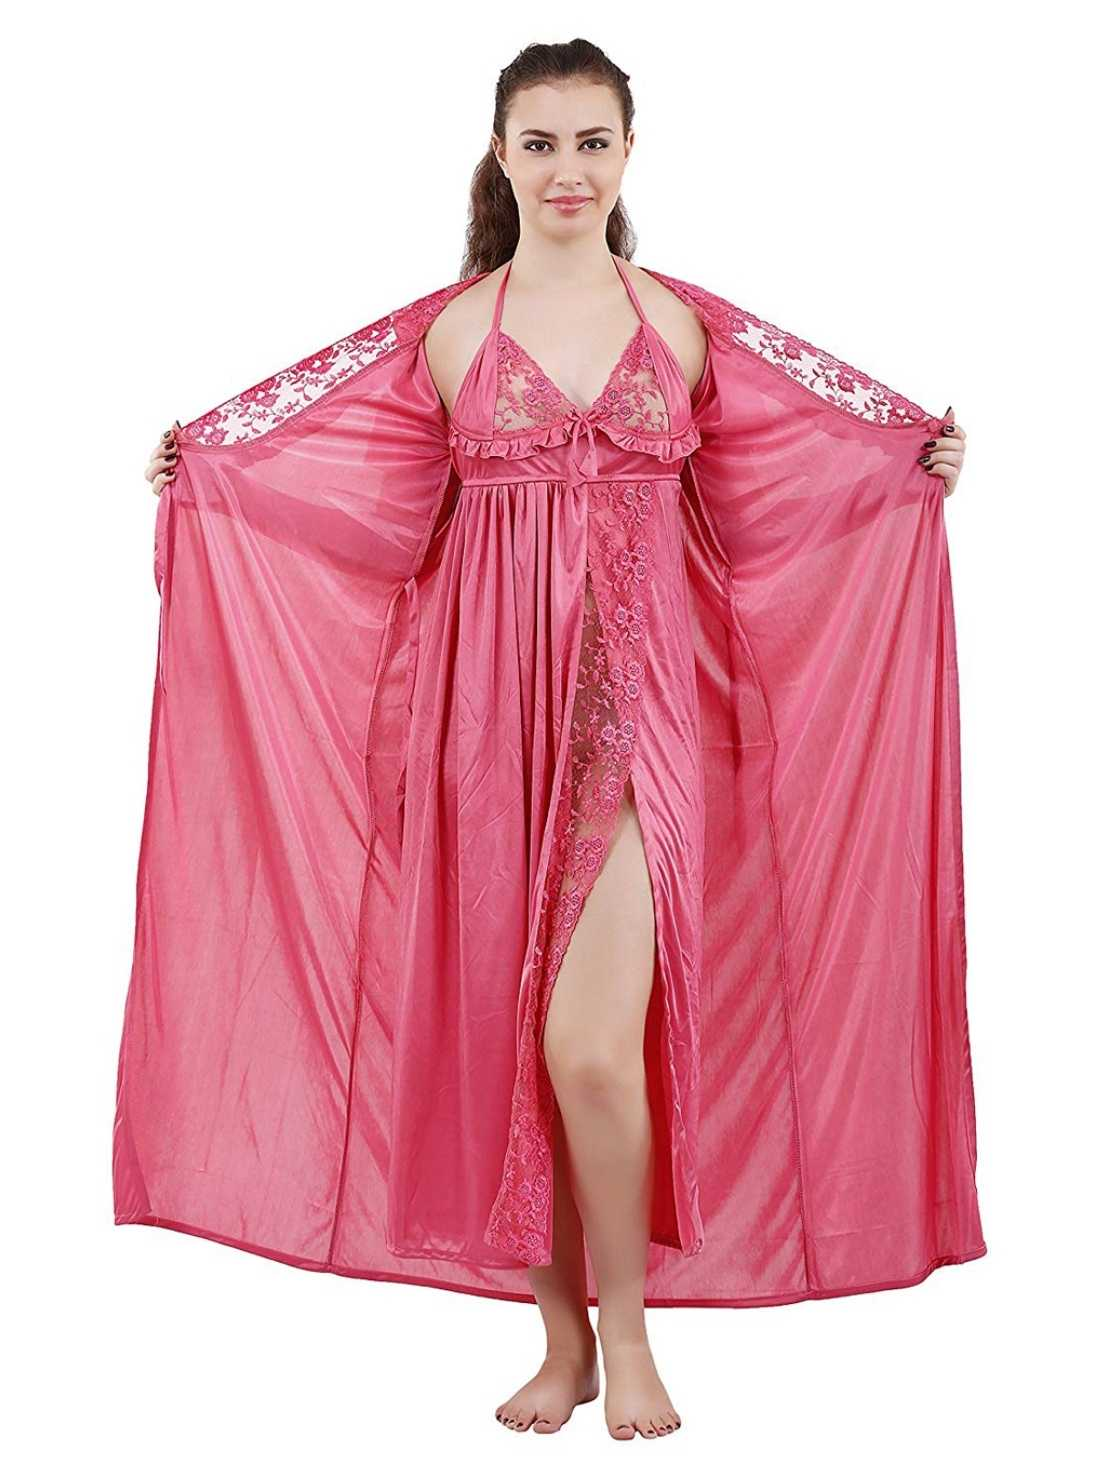 Women's Lace Night Gown